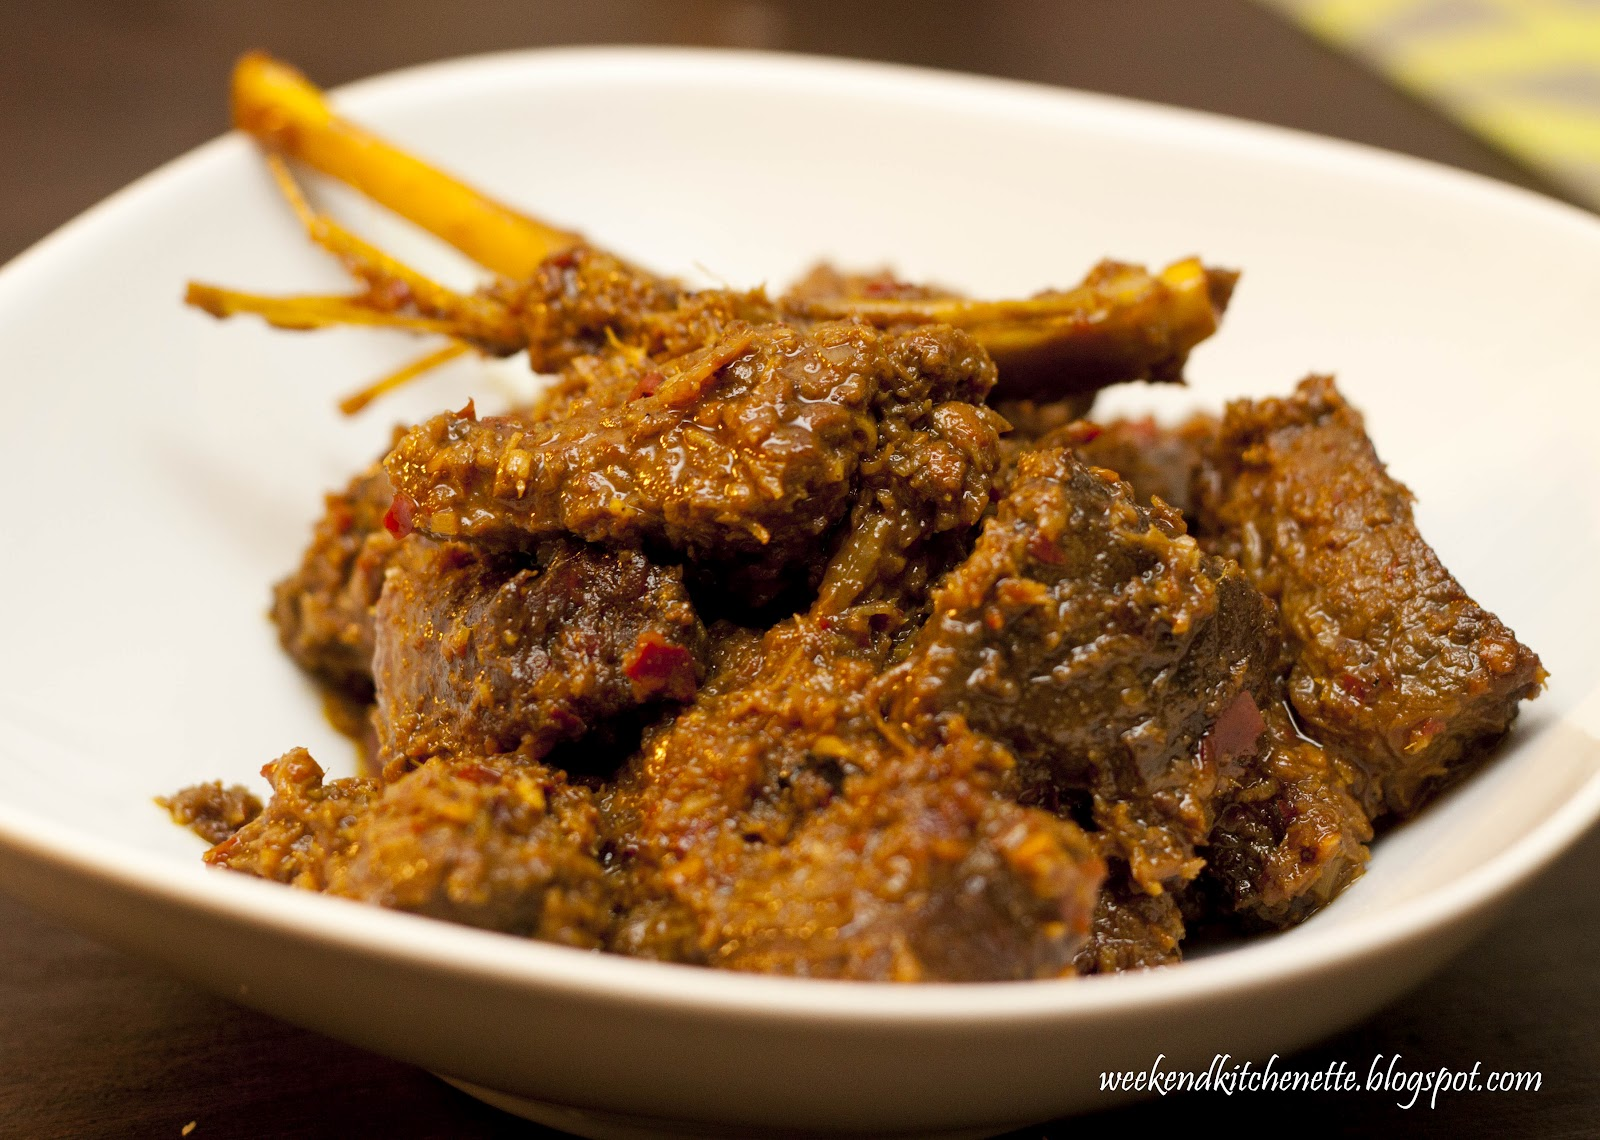 Weekend Kitchenette: Singapore Beef Rendang